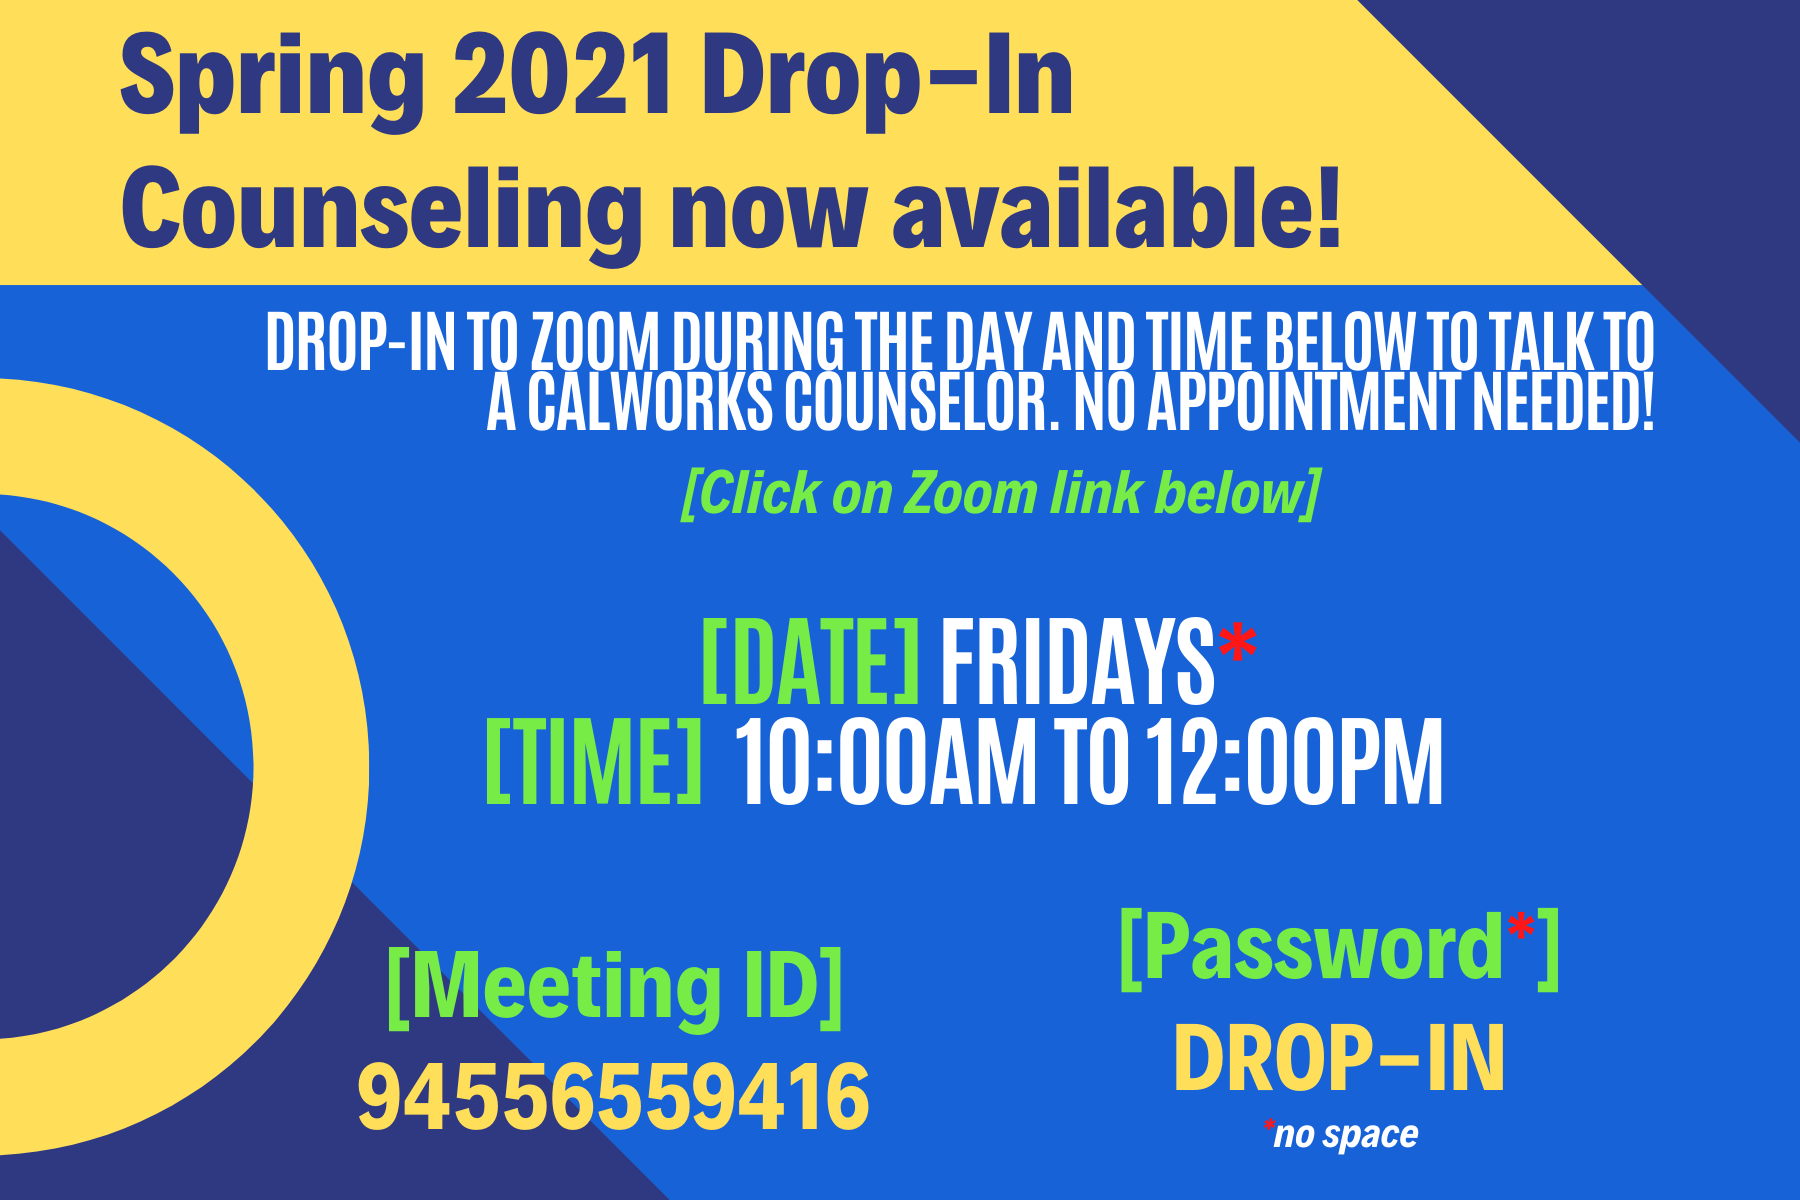 Spring 2021 Drop-In Counseling Image